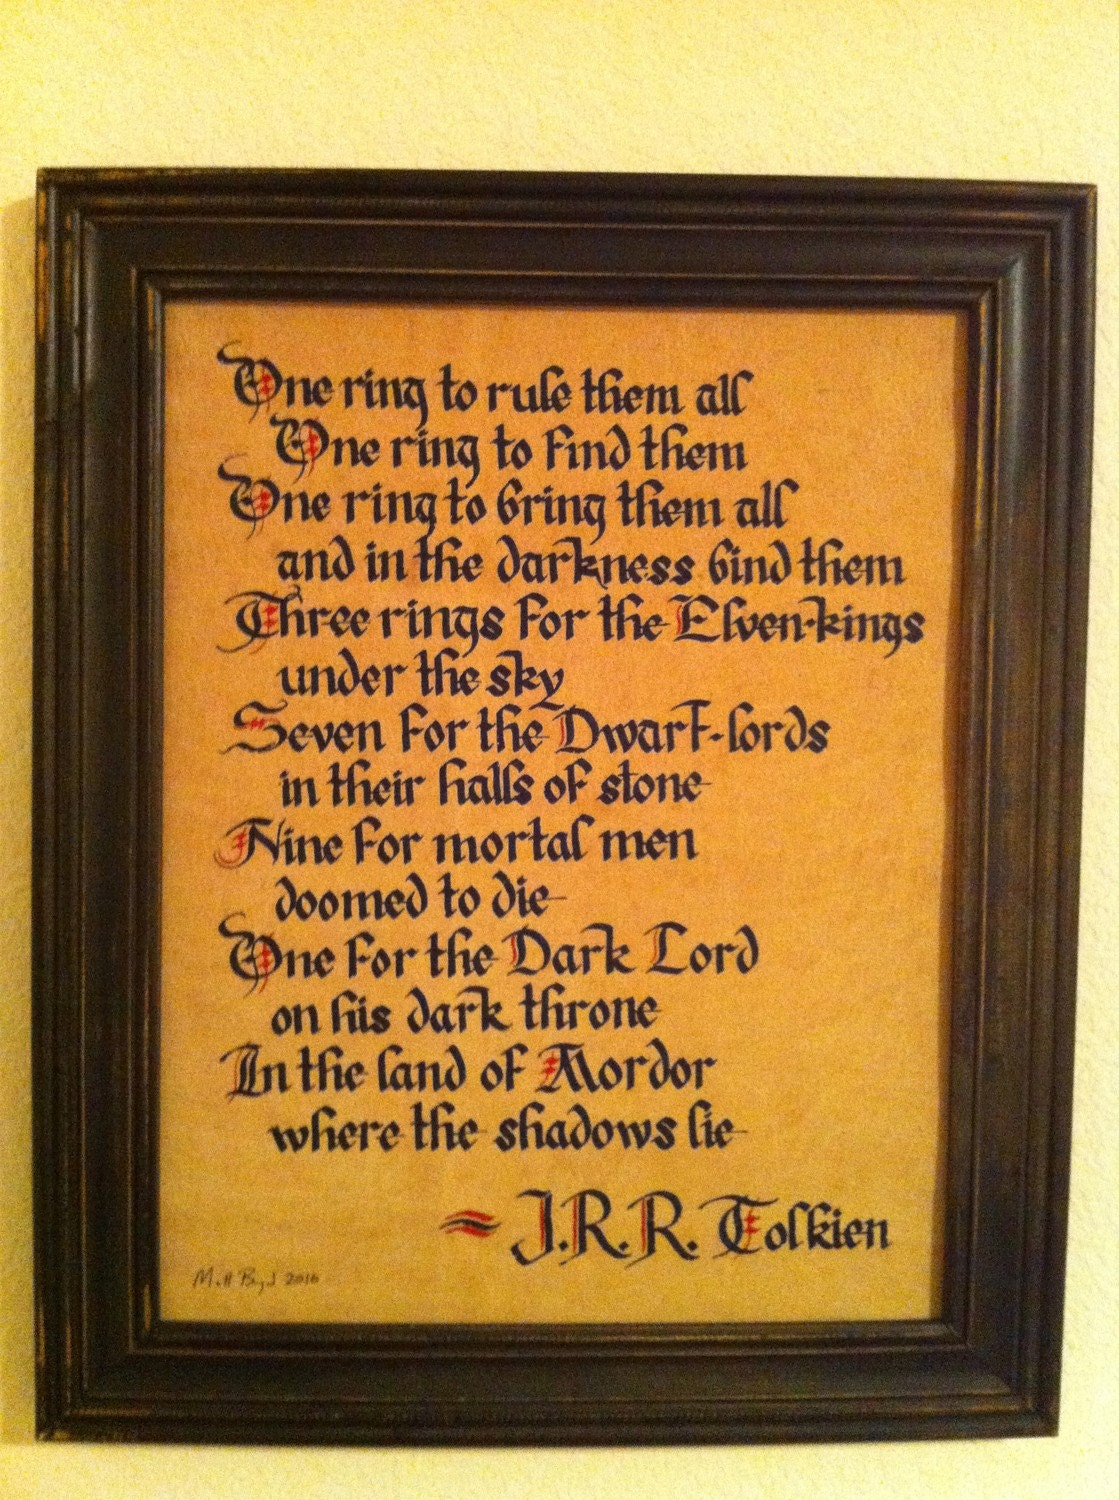 Framed Lord Of The Rings Poem One Ring. .80 Carat Engagement Rings. Black Camo Wedding Engagement Rings. 7 Carat Wedding Rings. Stamped Rings. Blue Diamond Baguette Wedding Rings. Rusted Wedding Rings. Marquise Diamond Wedding Rings. Gem Rings